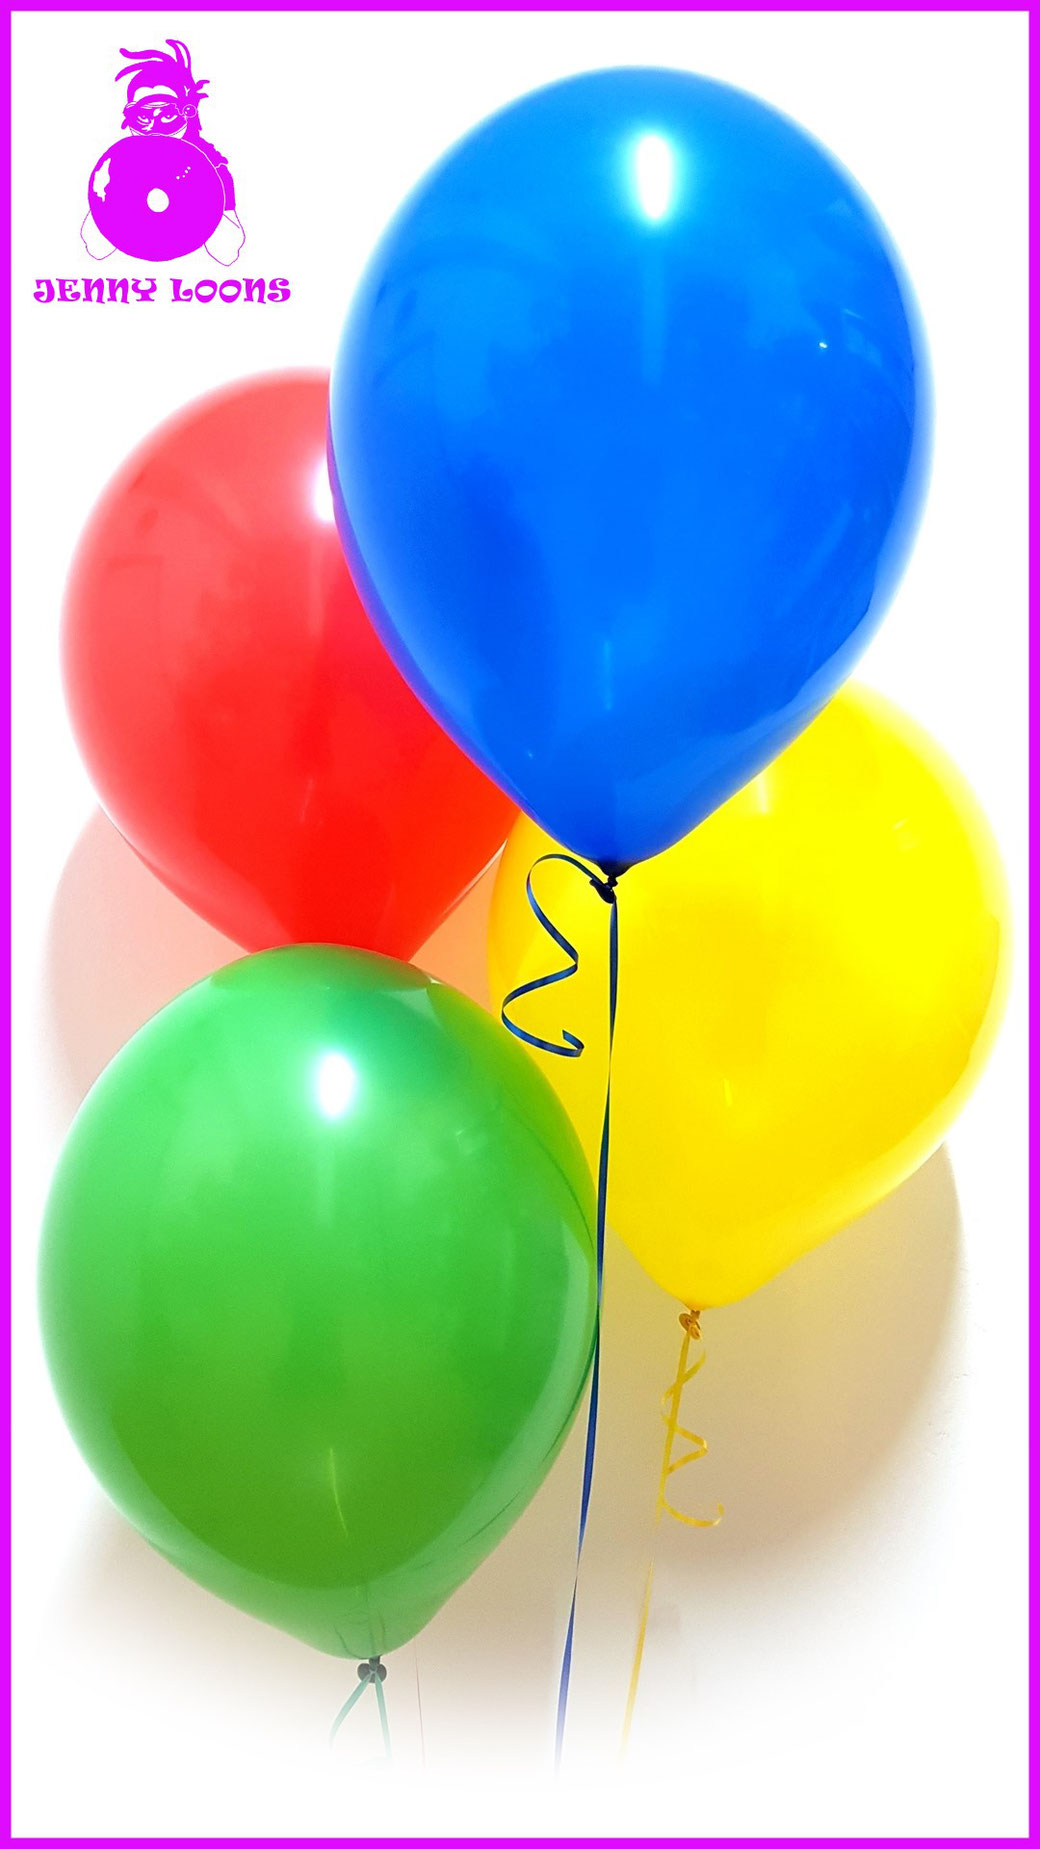 Everts Maxi Ballons Luftballons grosse 40cm 16inch Amscan